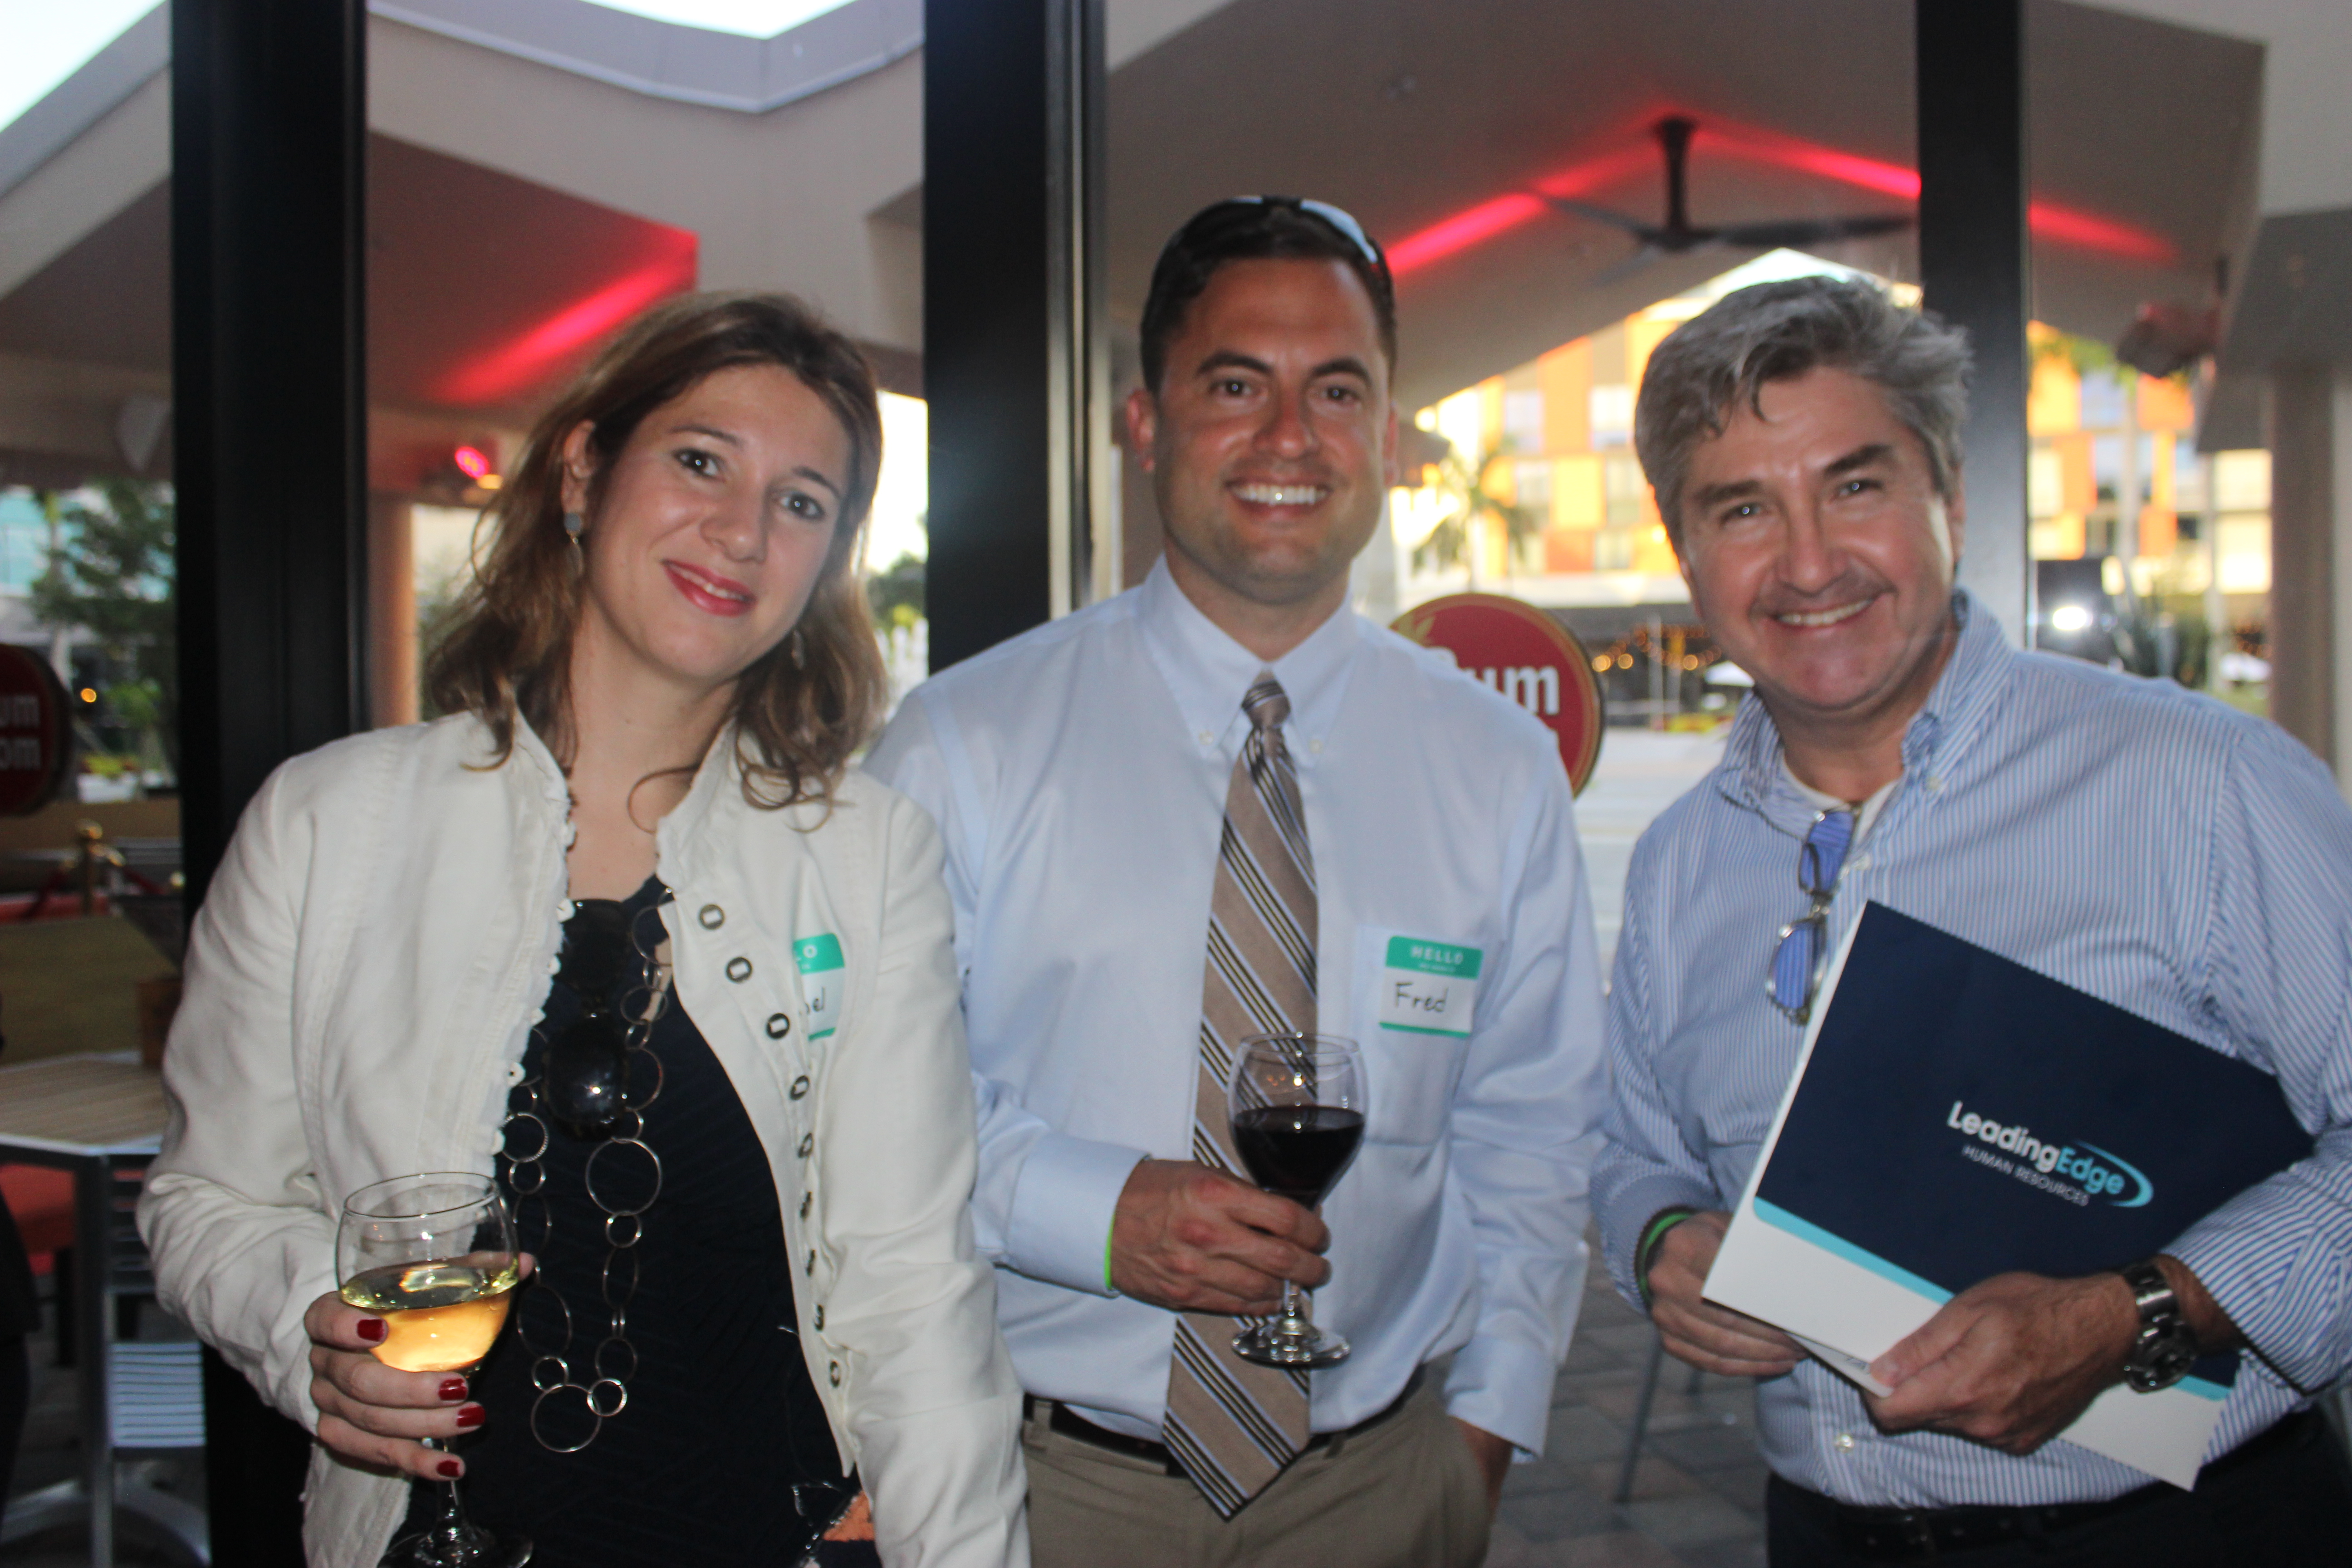 Group Photo in Doral Chamber of Commerce event, Kings Bowl Business Networking.